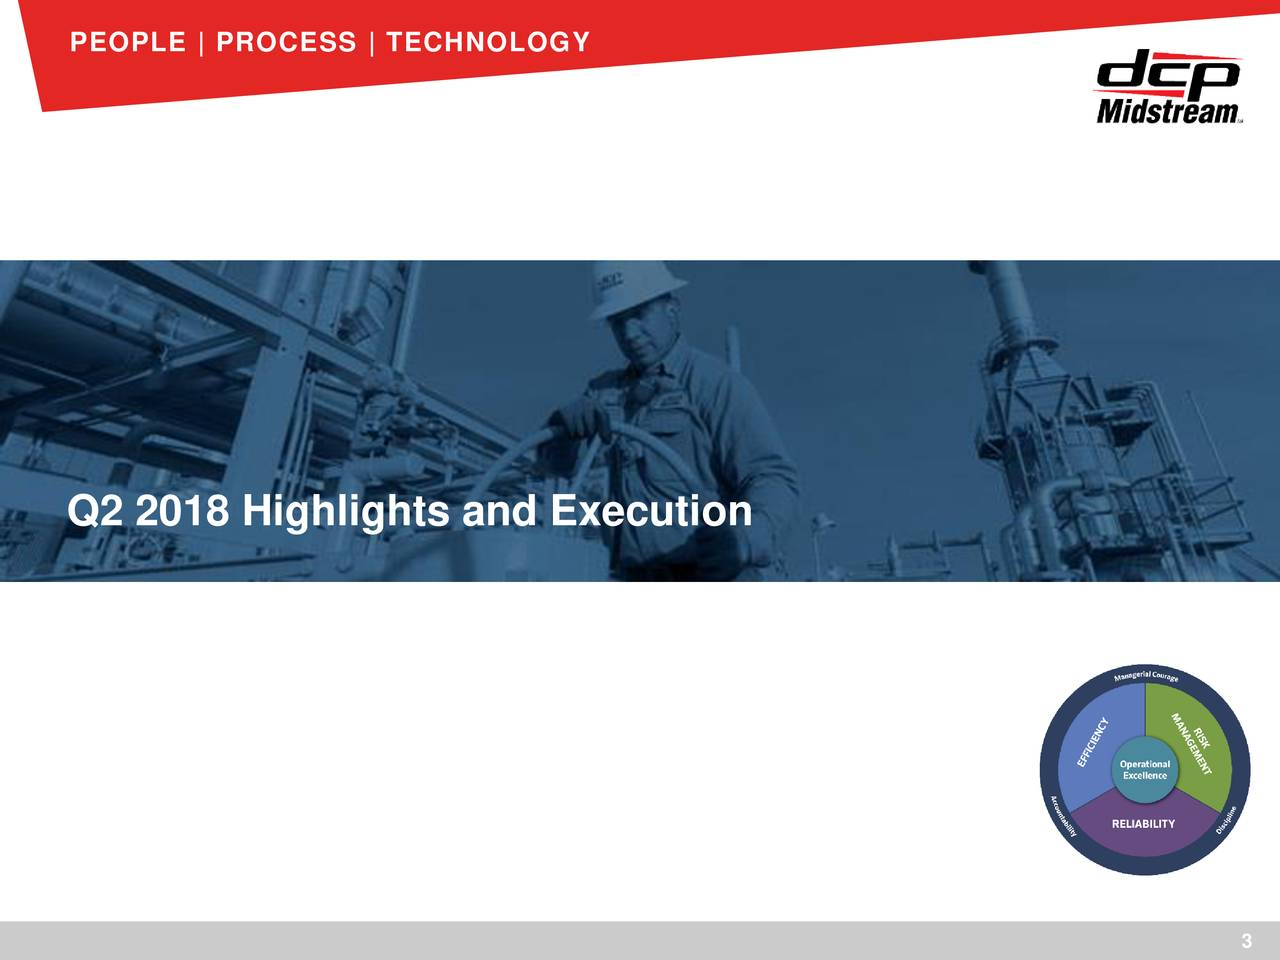 Q2 2018 Highlights and Execution